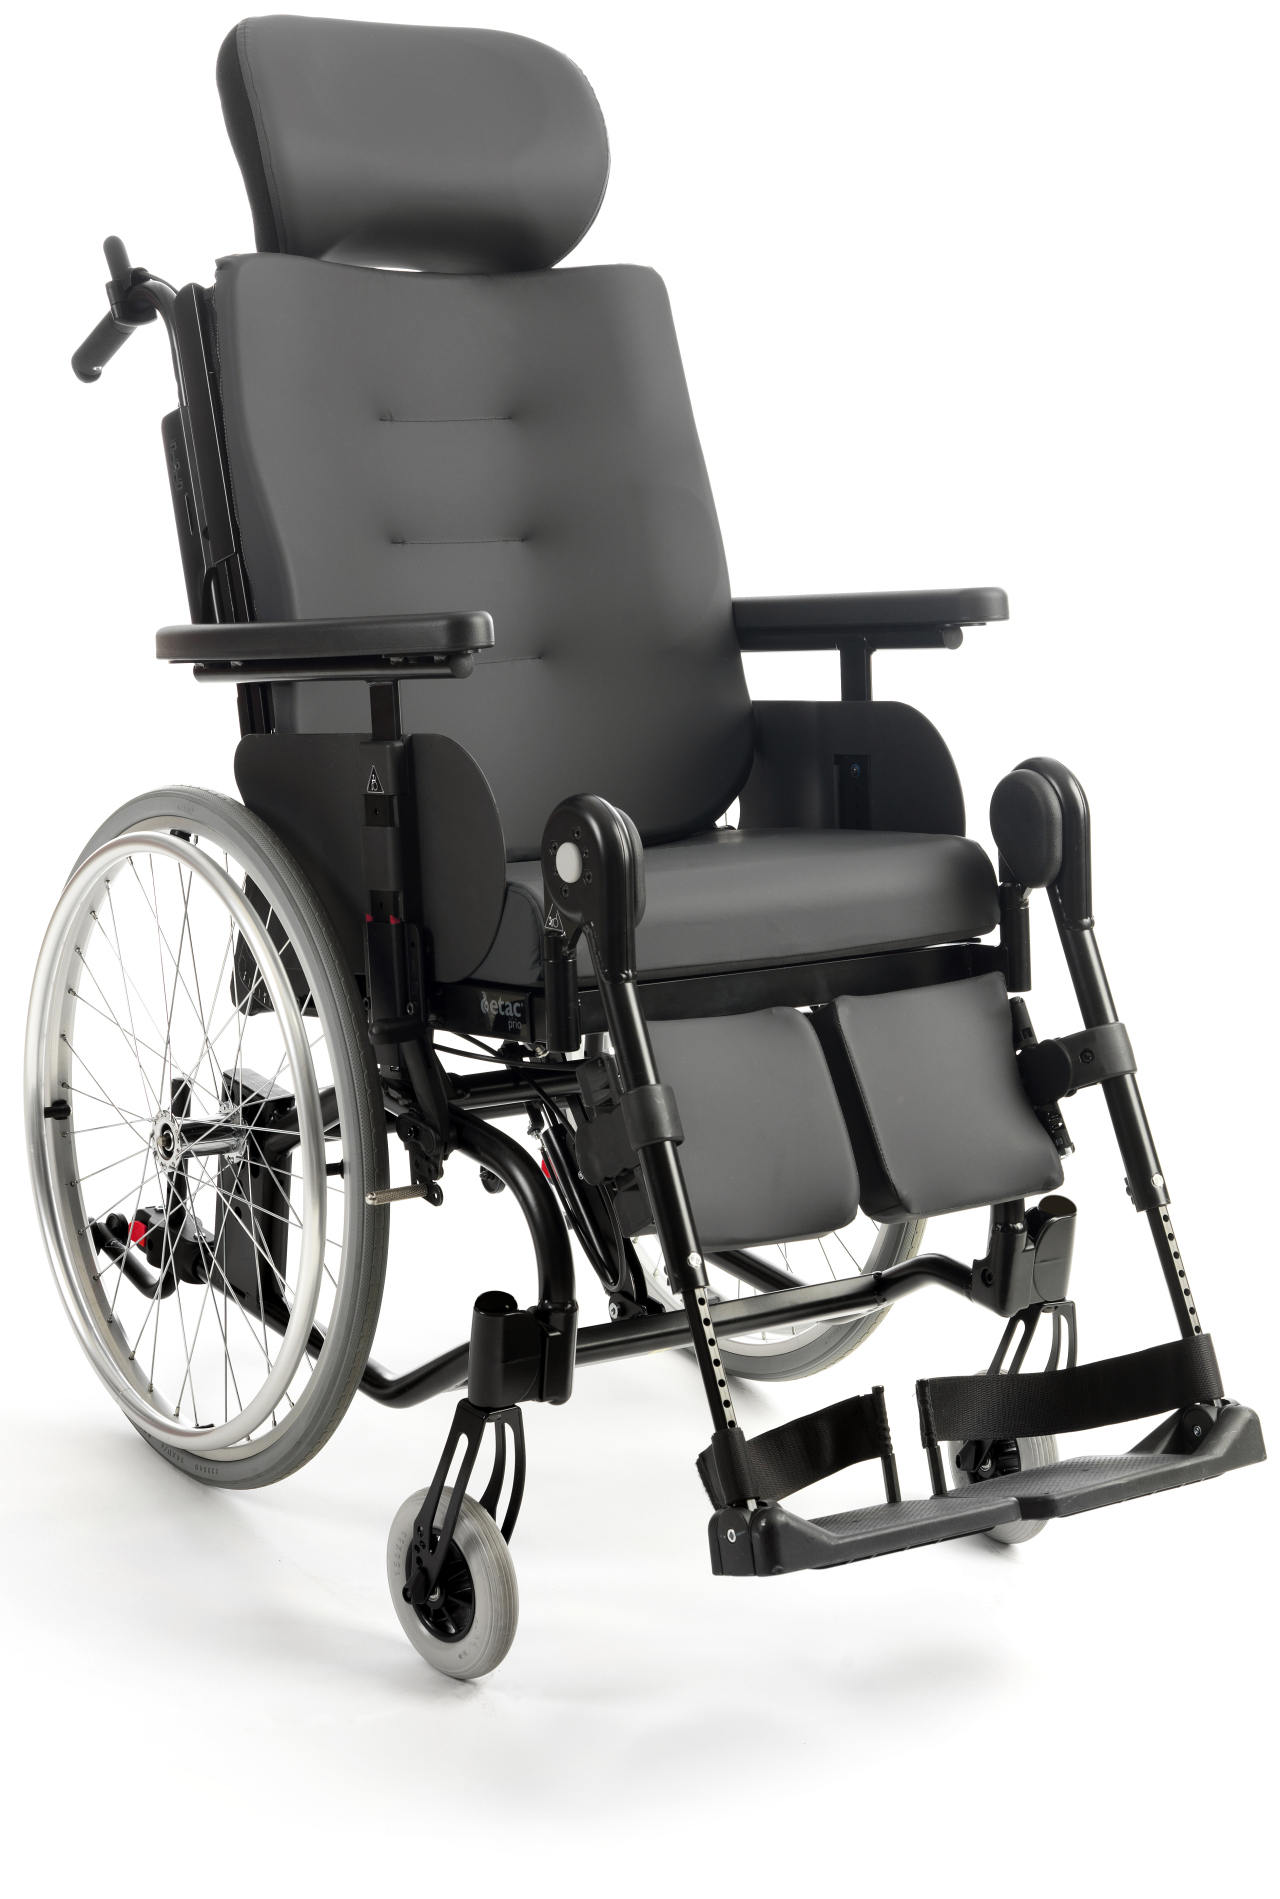 Etac Prio multi-functional Wheelchair - Discontinued